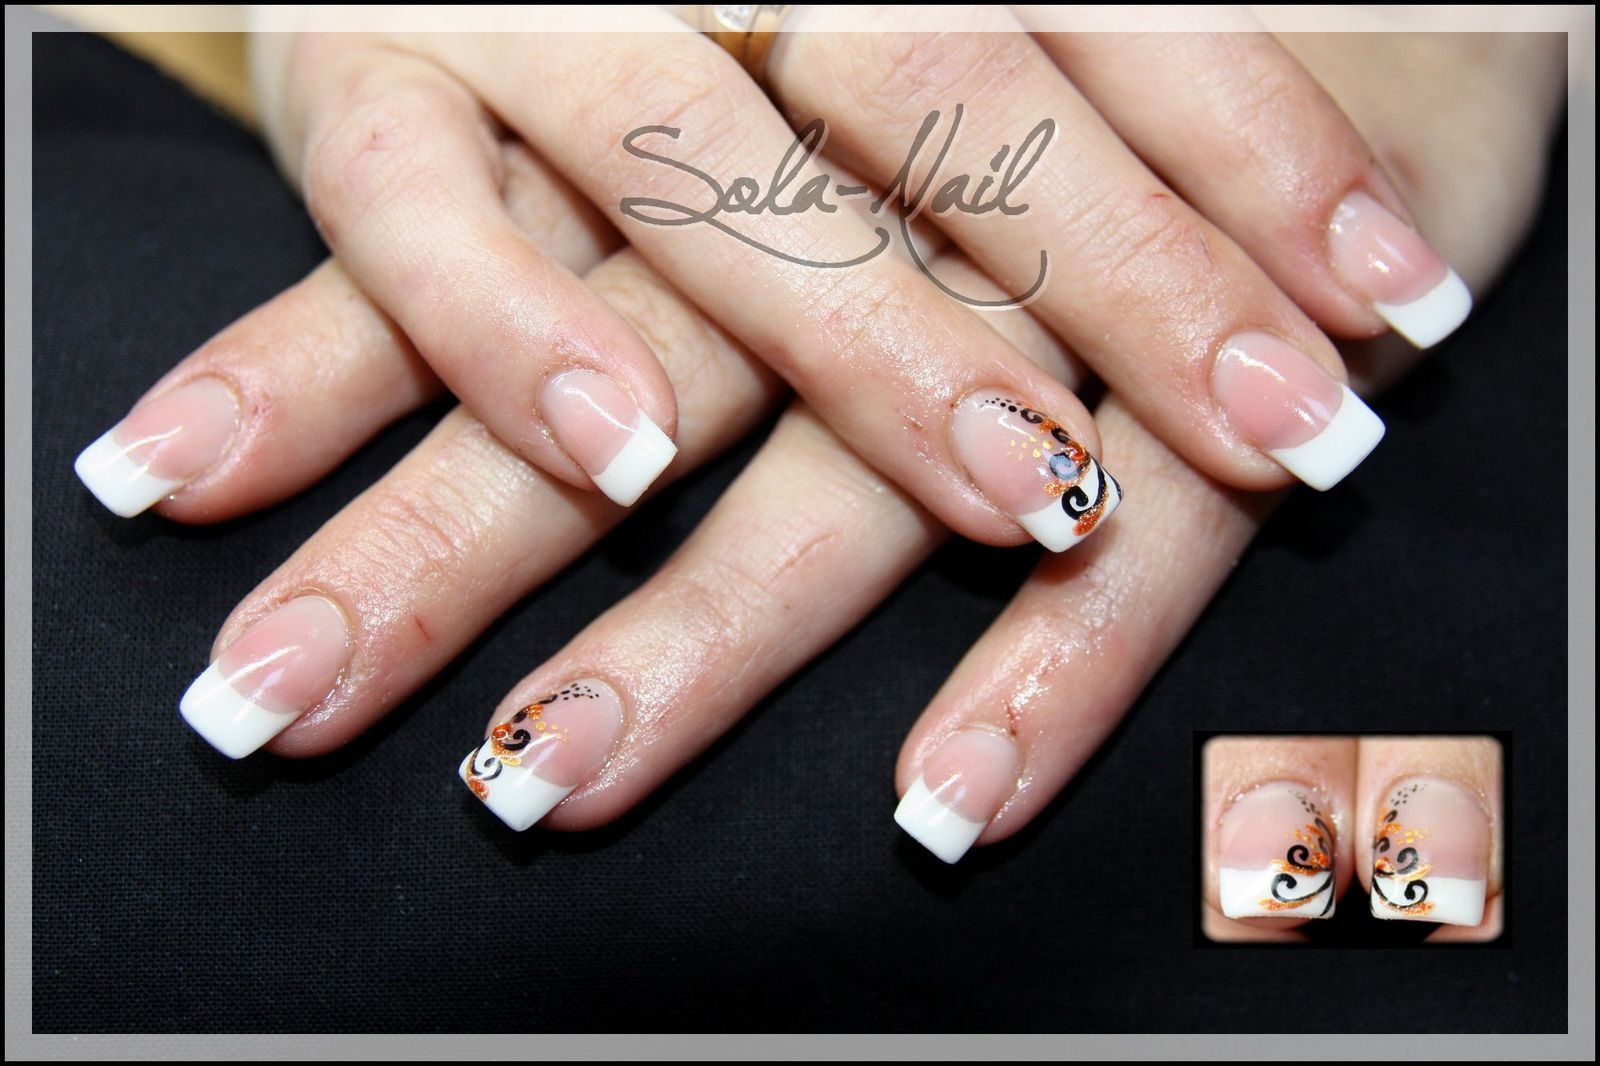 Proth sie ongulaire sur ongles rong s construction gel french et nail art style oriental - Ongle gel french ...